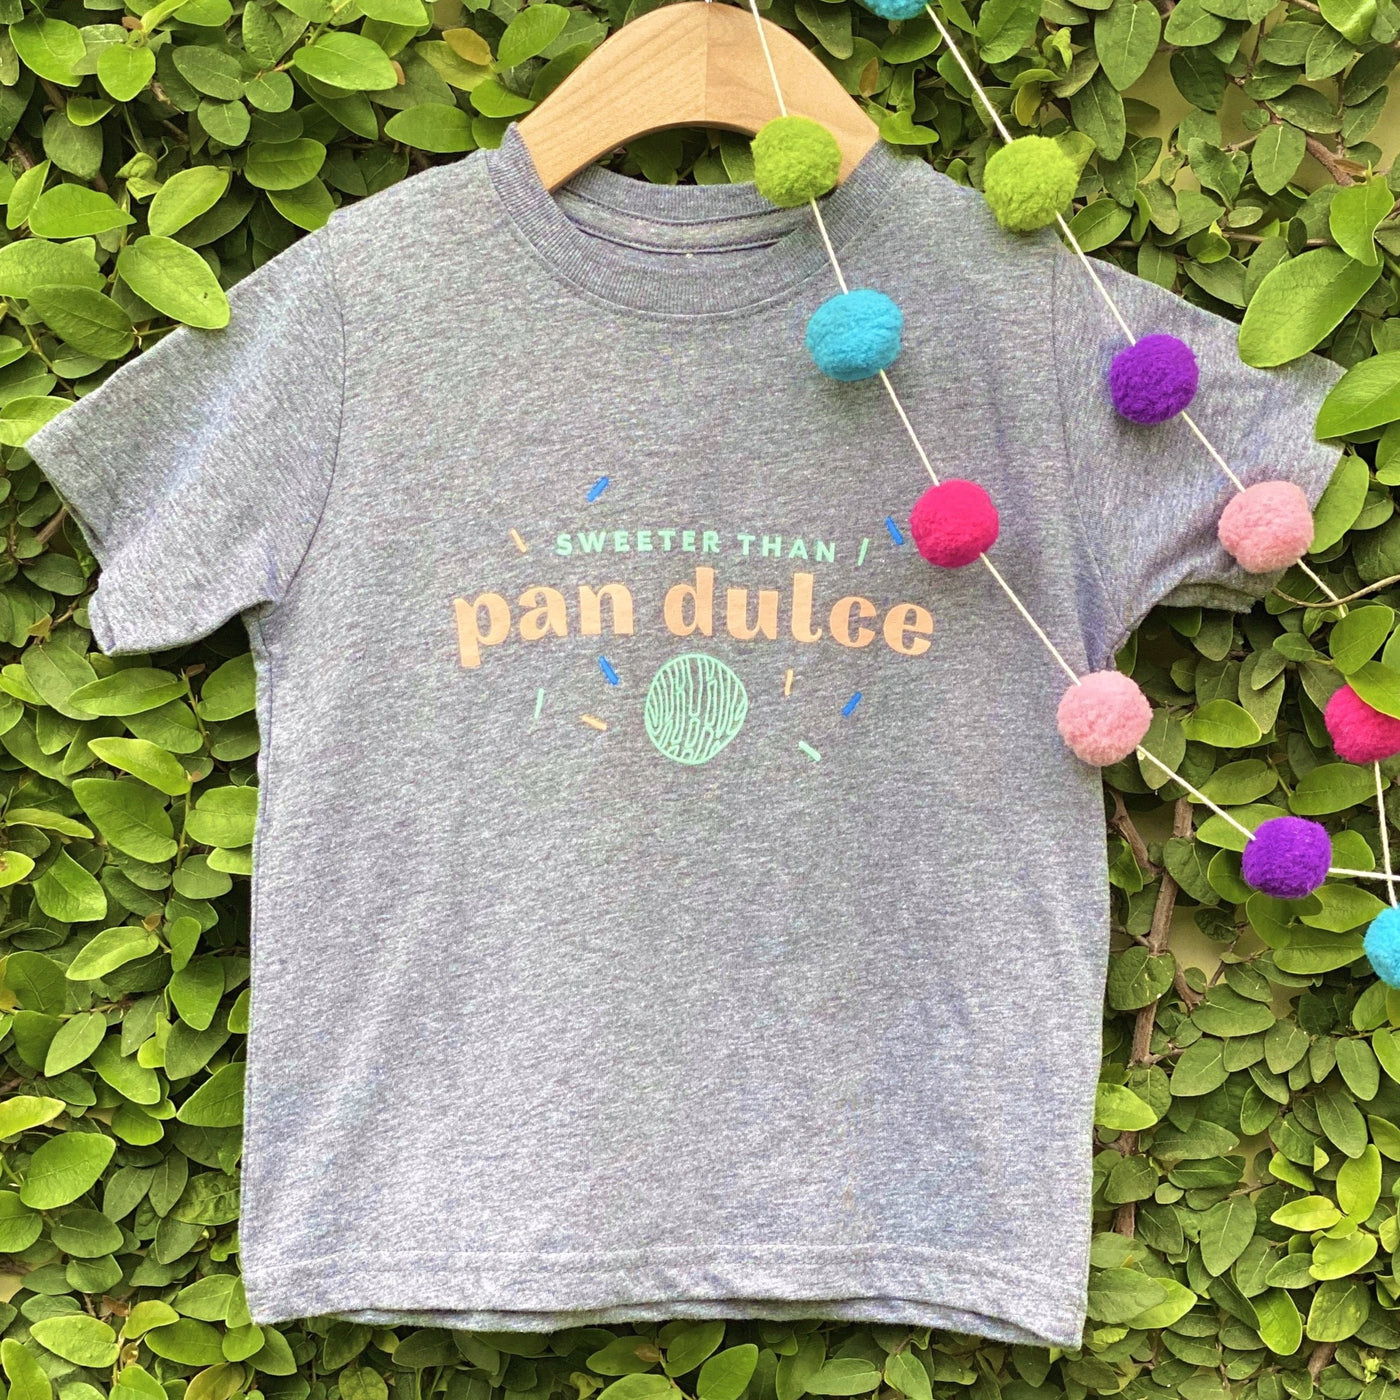 Sweeter Than Pan Dulce- Gray Tee [Infant & Toddler Size]